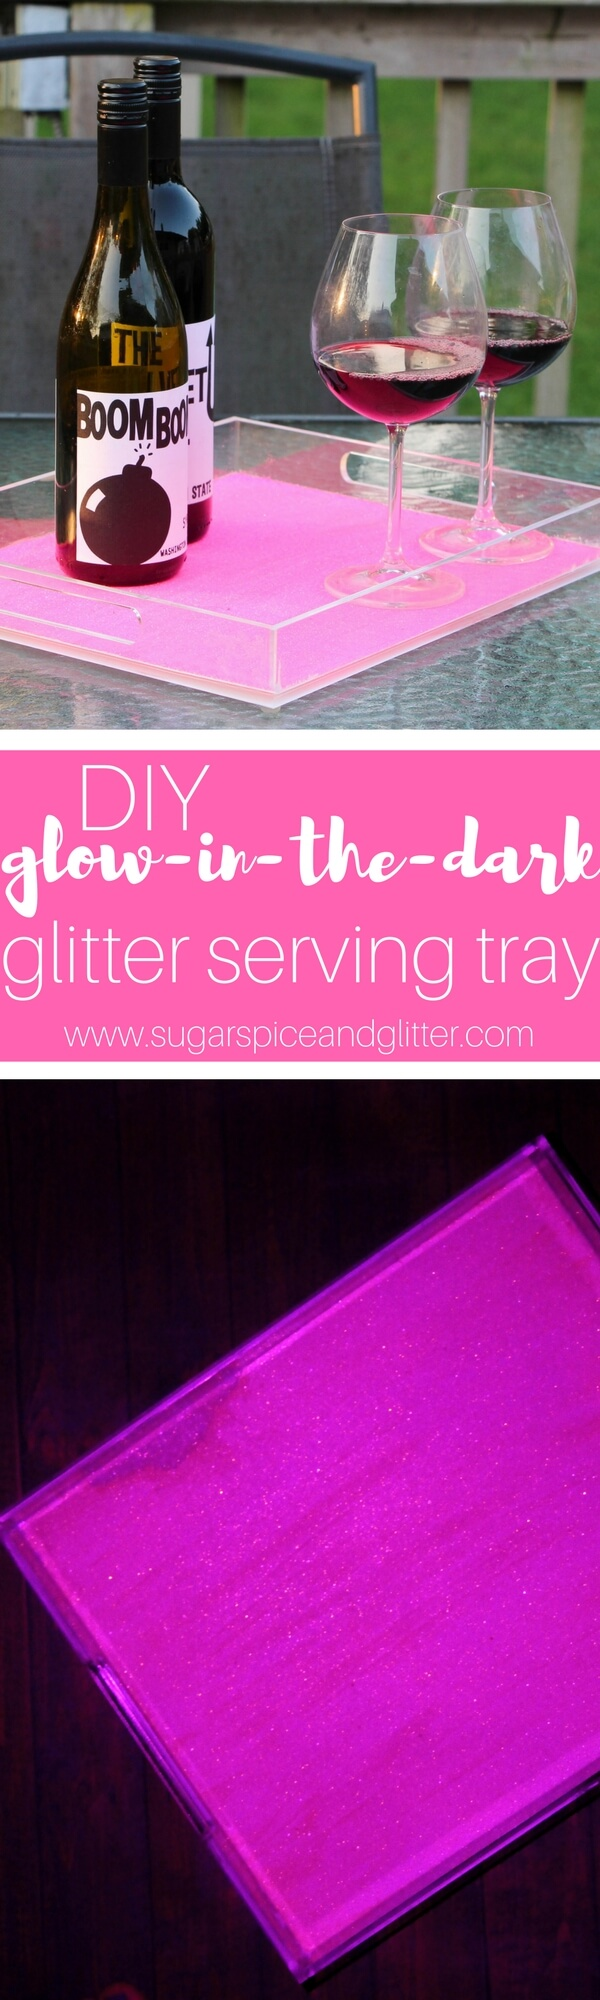 DIY Glitter Glow-in-the-Dark Tray is the perfect entertaining DIY, especially for nighttime cocktails